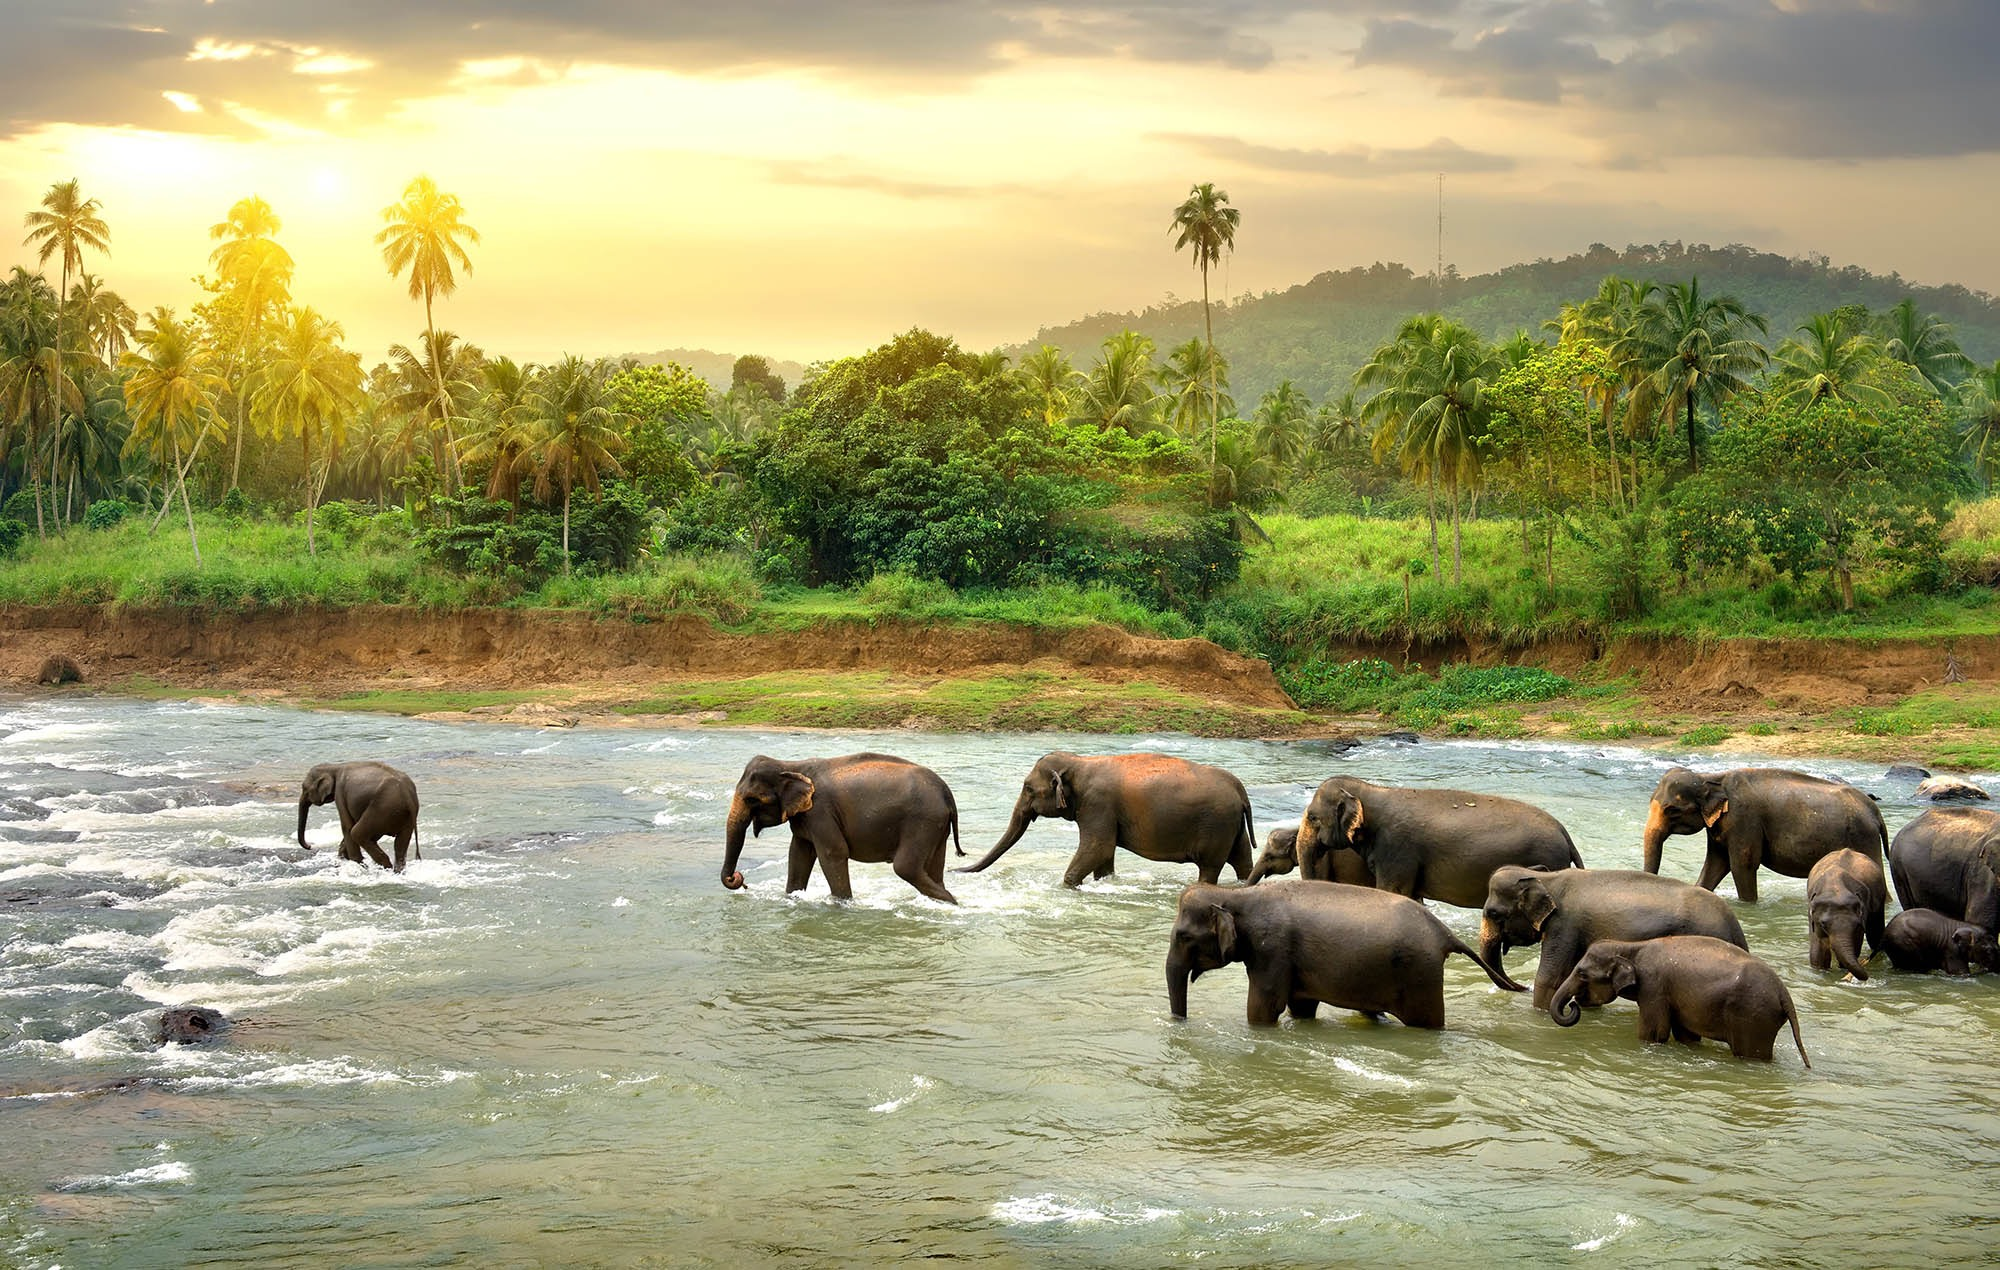 Sri Lanka elephants crossing the river